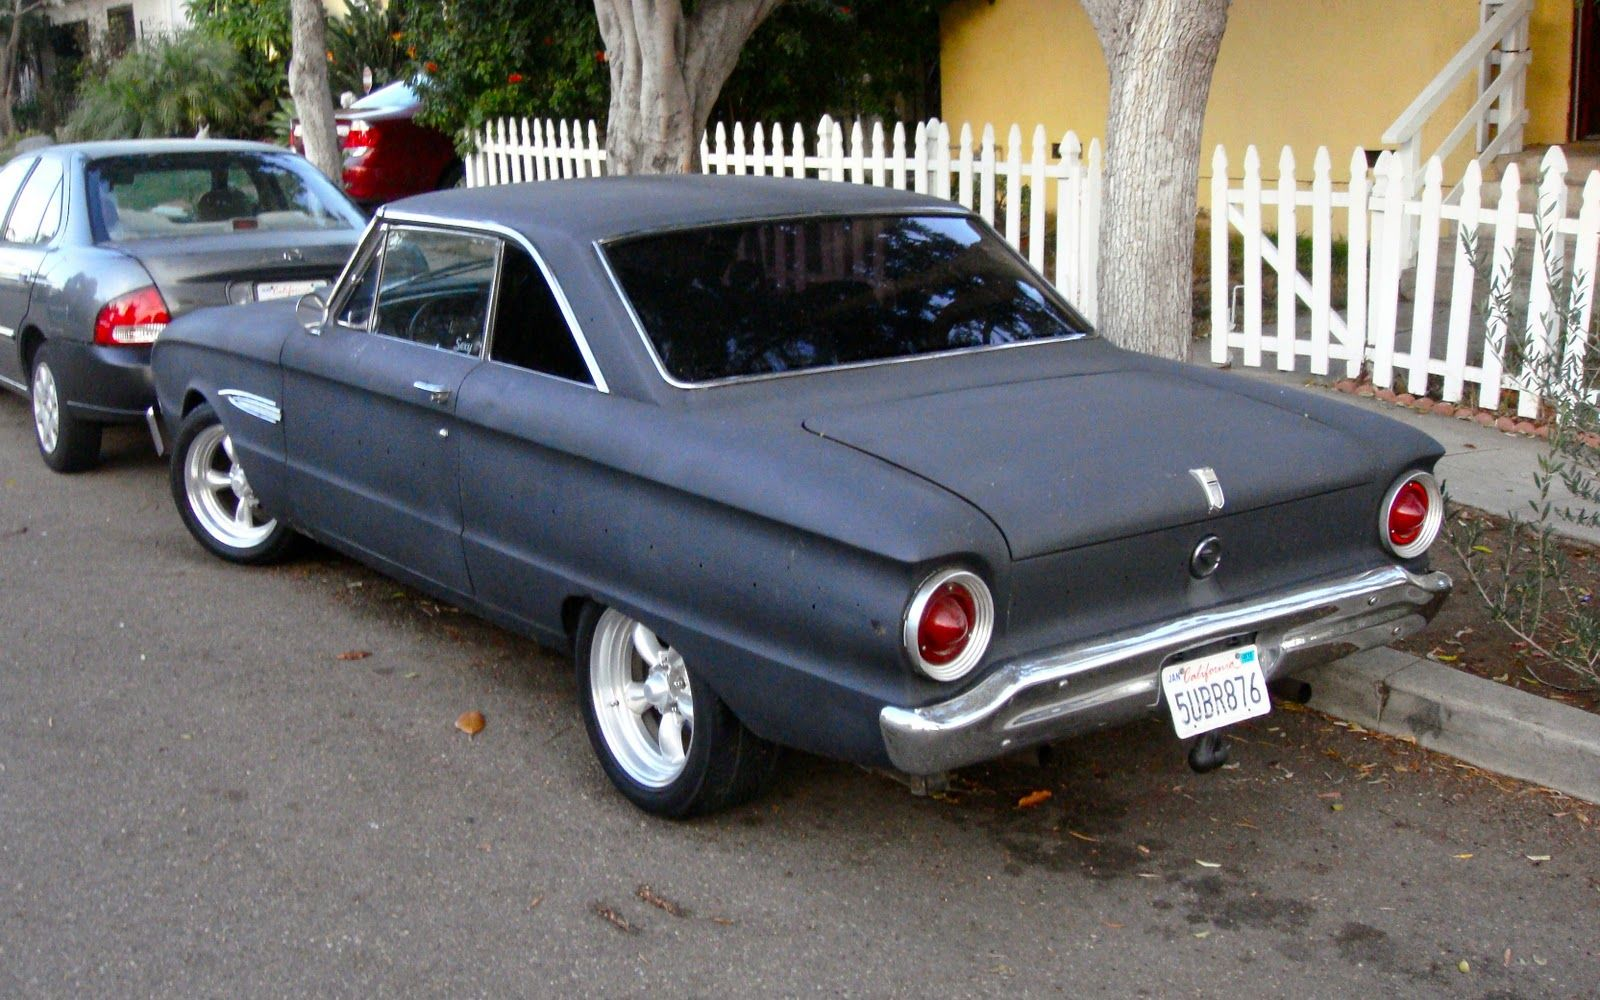 1961 ford falcon for sale racingjunk classifieds - The Street Peep 1963 Ford Falcon Futura Coupe